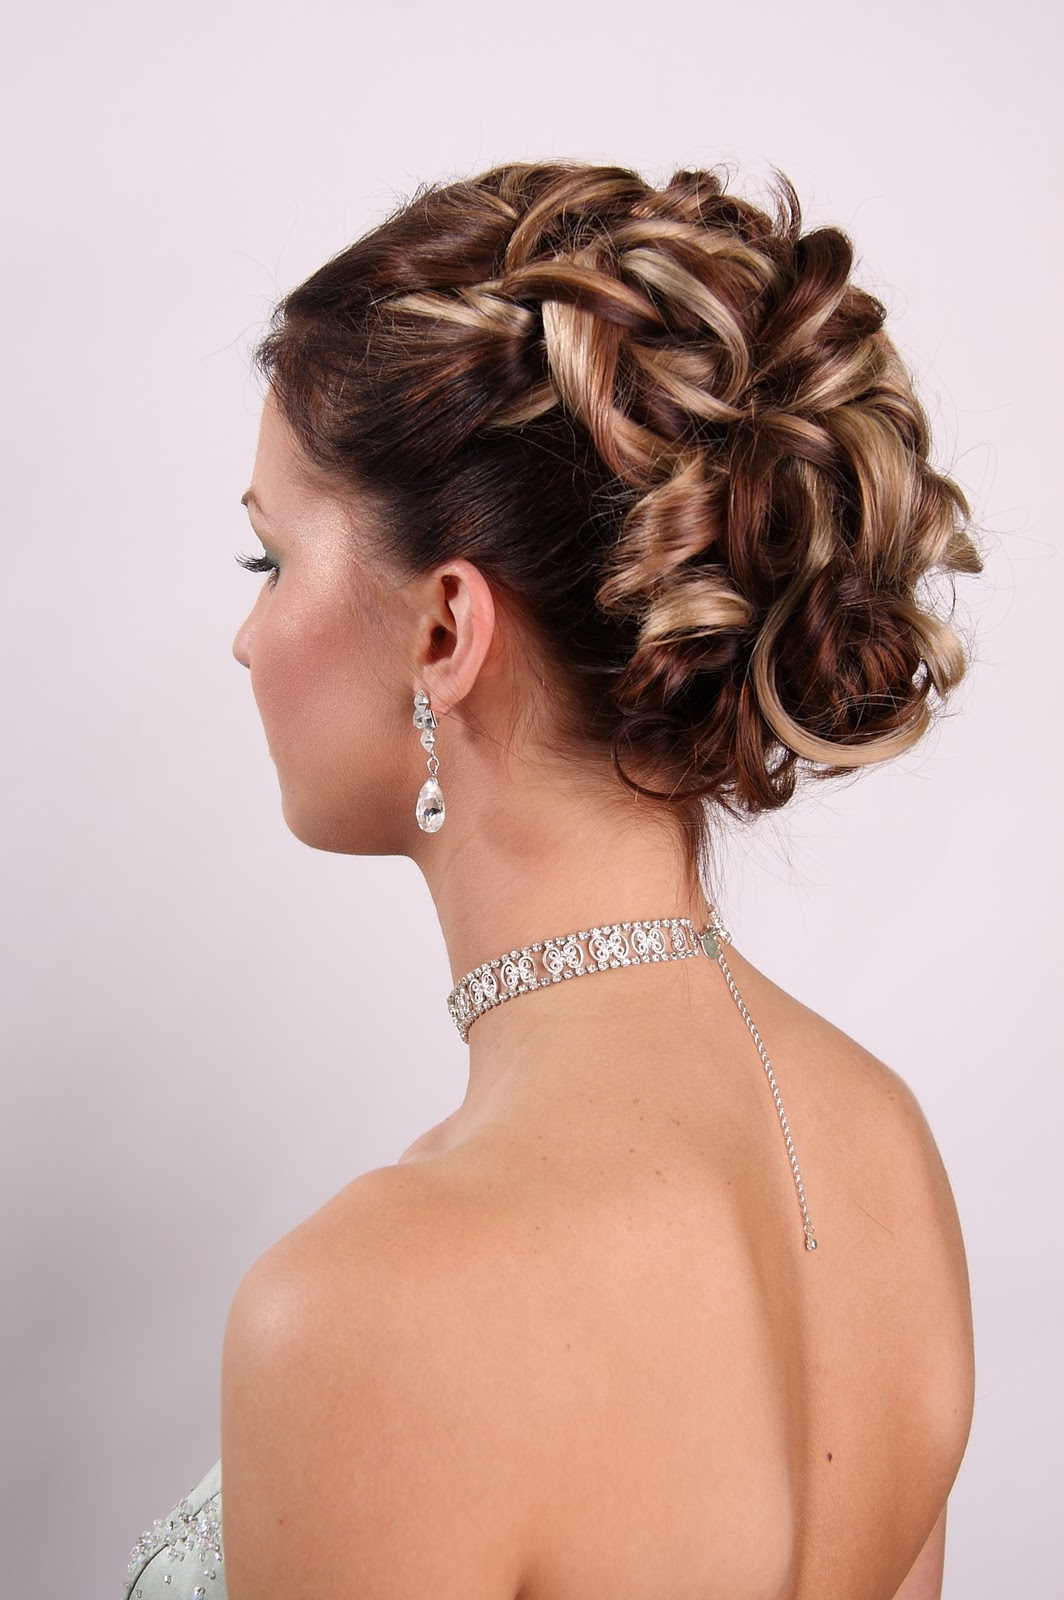 Well Liked Medium Hairstyles For Brides For Bridesmaid Hairstyles Medium Length – Hairstyle For Women & Man (View 19 of 20)